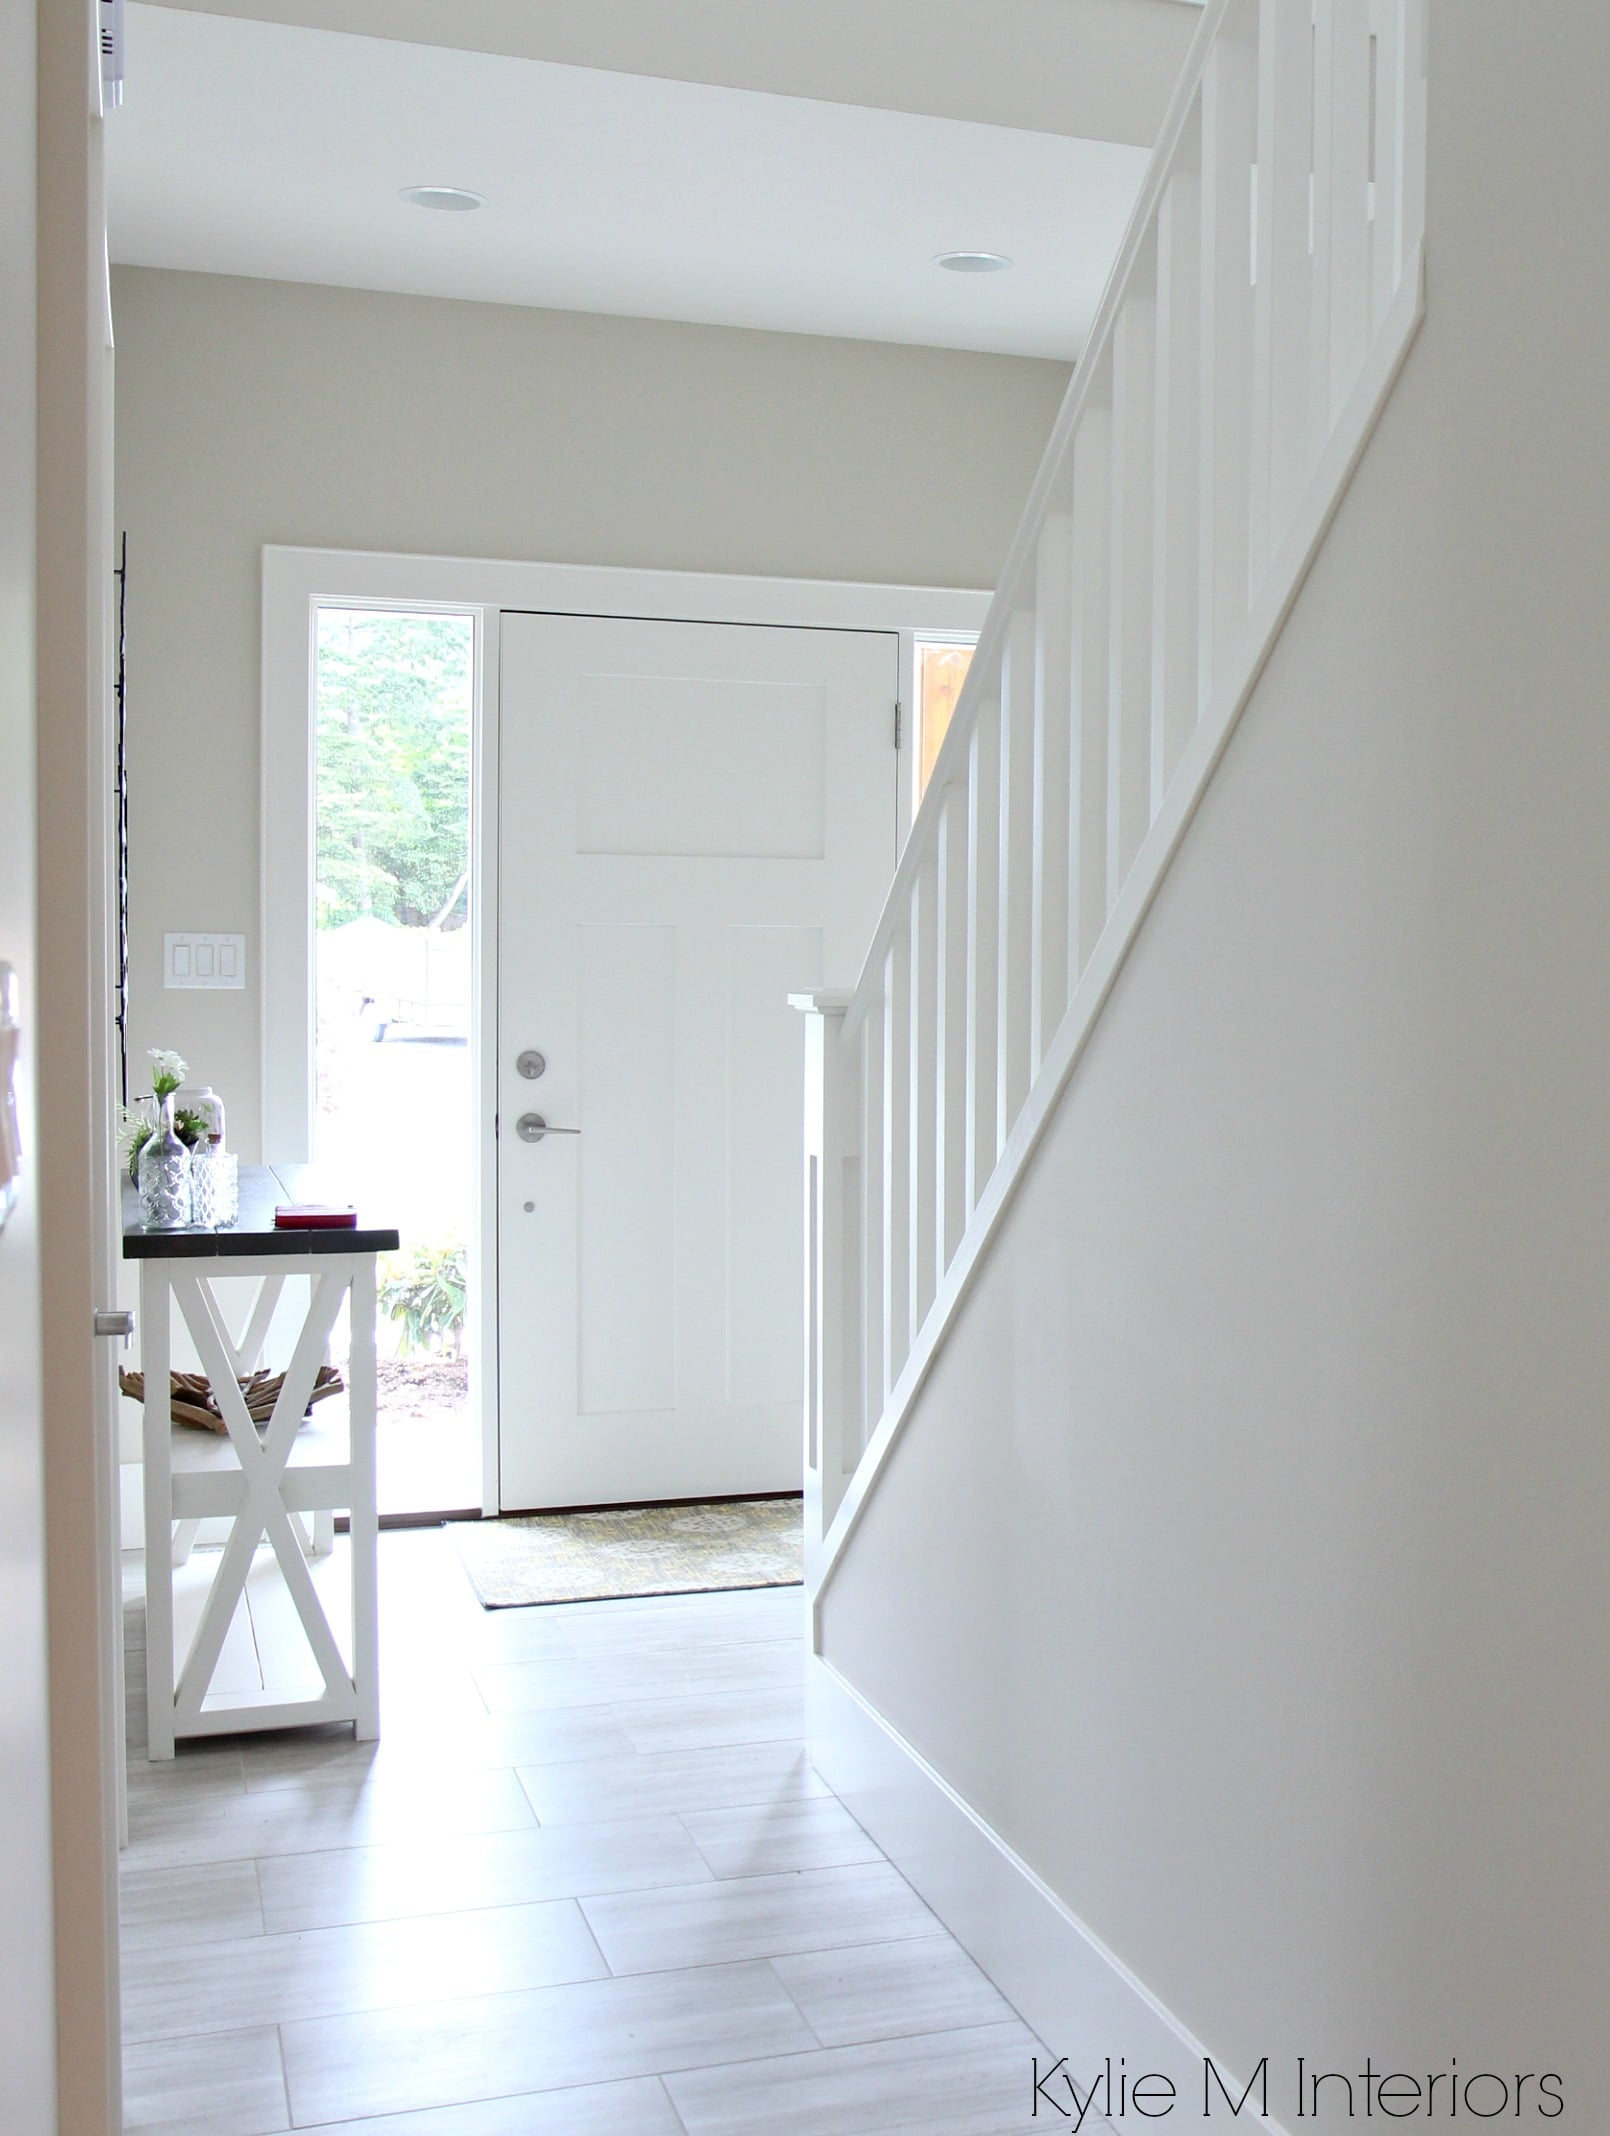 Benjamin Moore White Dove Kitchen Cabinets Benjamin Moore Edgecomb Gray Or Greige In Entryway Foyer